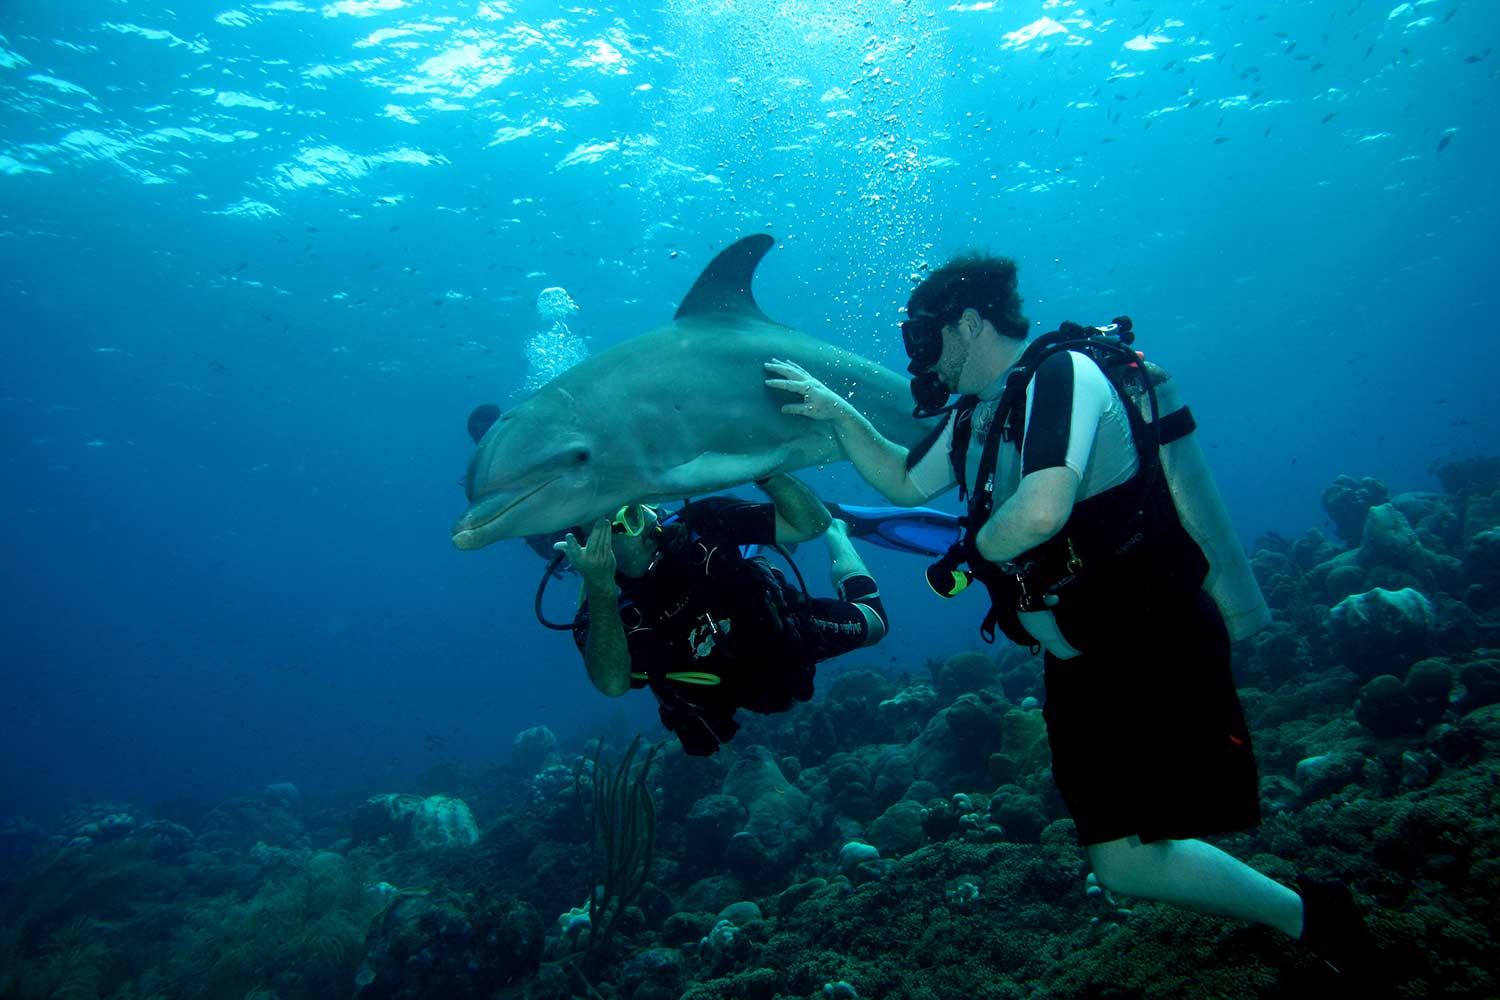 SUDS divers and dolphin